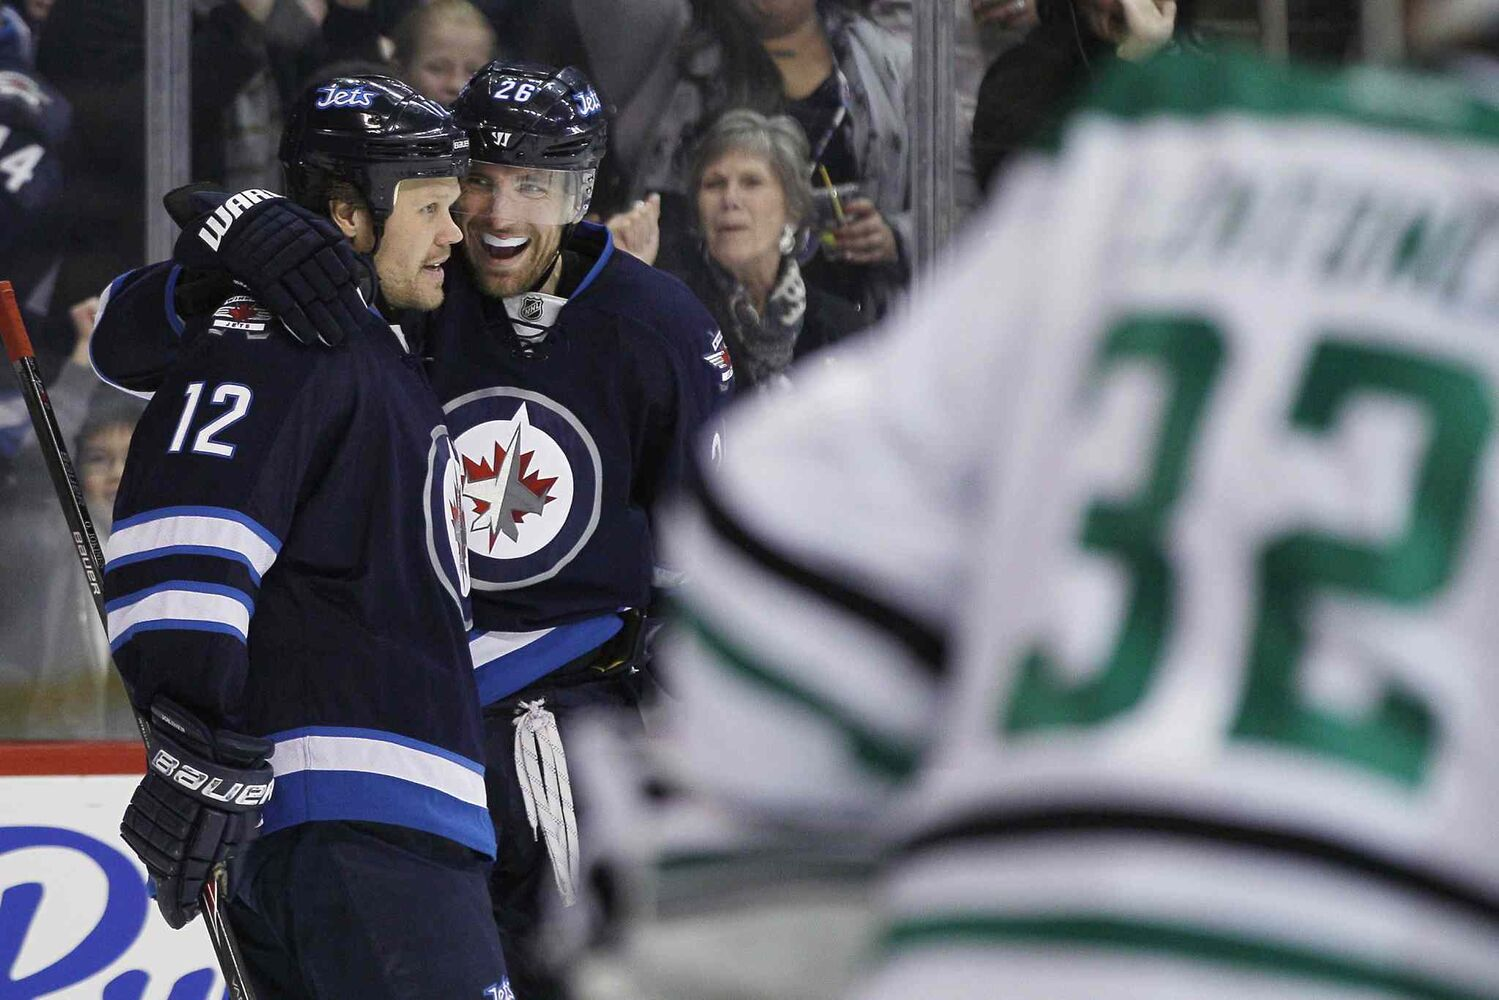 Olli Jokinen (left) and Blake Wheeler (centre) celebrate Wheeler's goal against Dallas Stars goaltender Kari Lehtonen during the second period. (JOHN WOODS / THE CANADIAN PRESS)